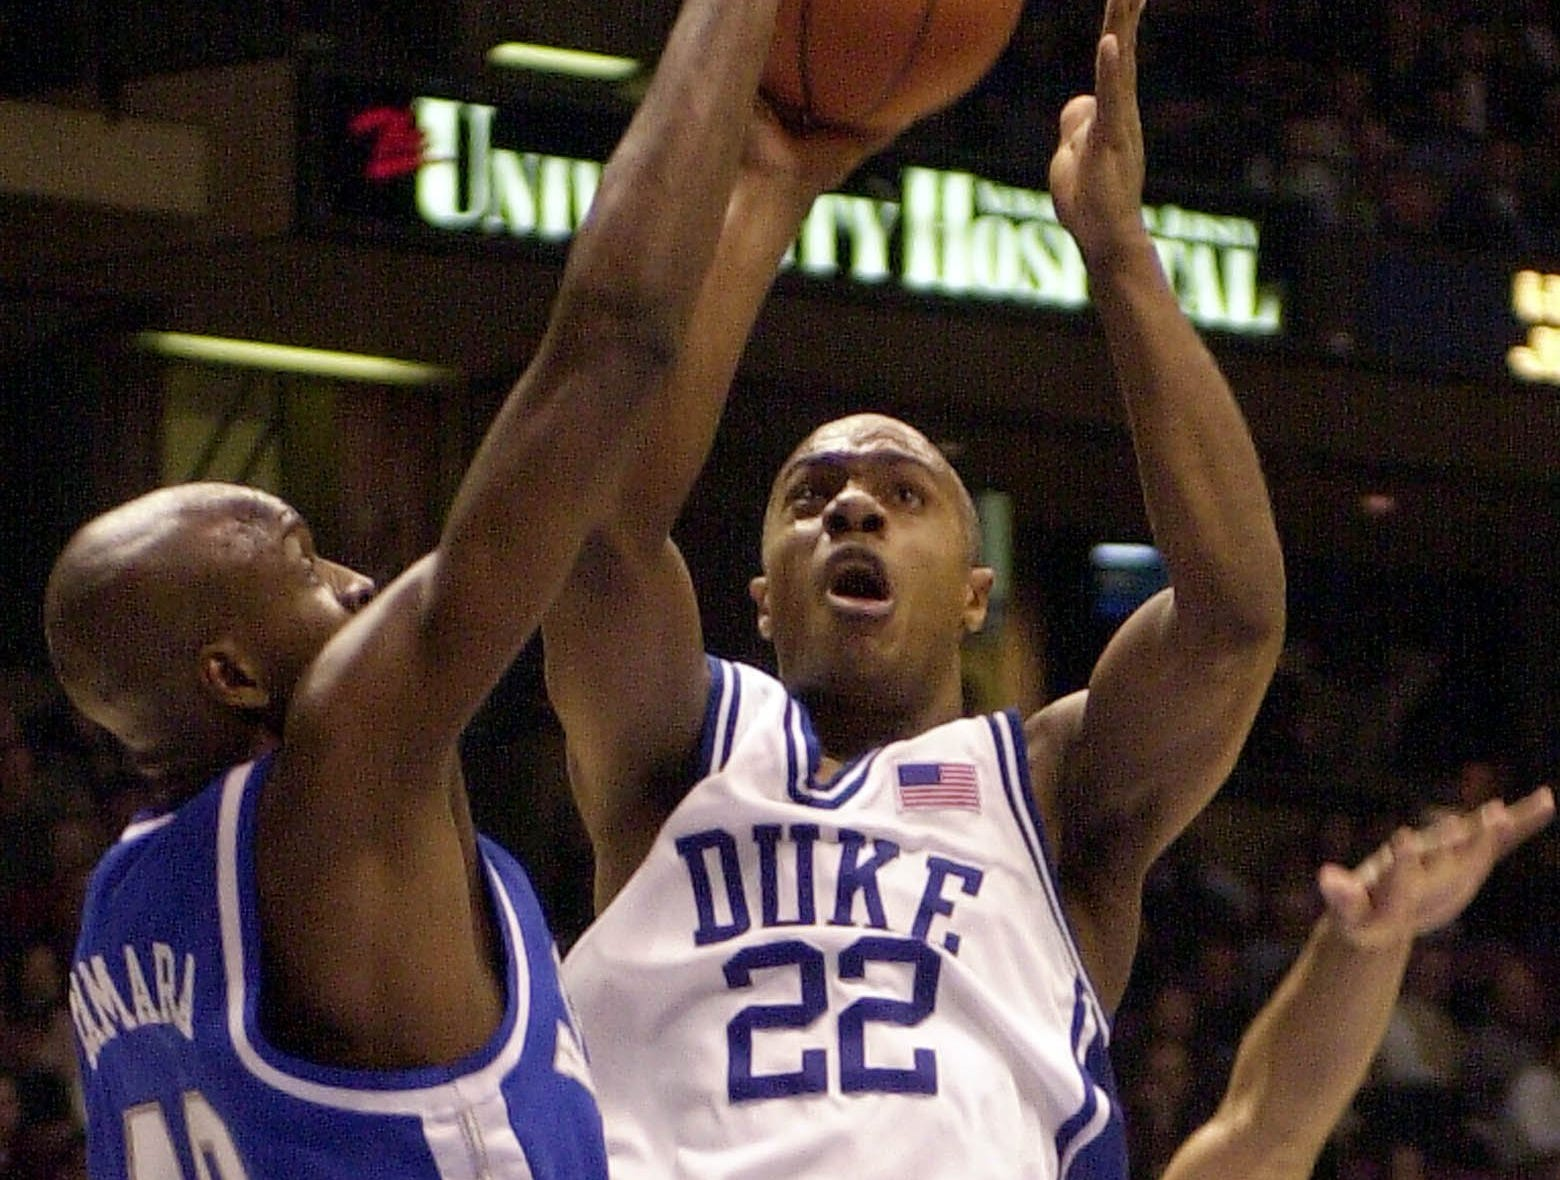 Kentucky's Andy Borman defends Duke's Jason Williams during the second half of the Jimmy V classic in East Rutherford, N.J. Tuesday Dec., 18, 2001. Duke defeated Kentucky 95-92 in ovetime. Williams scored 38 points